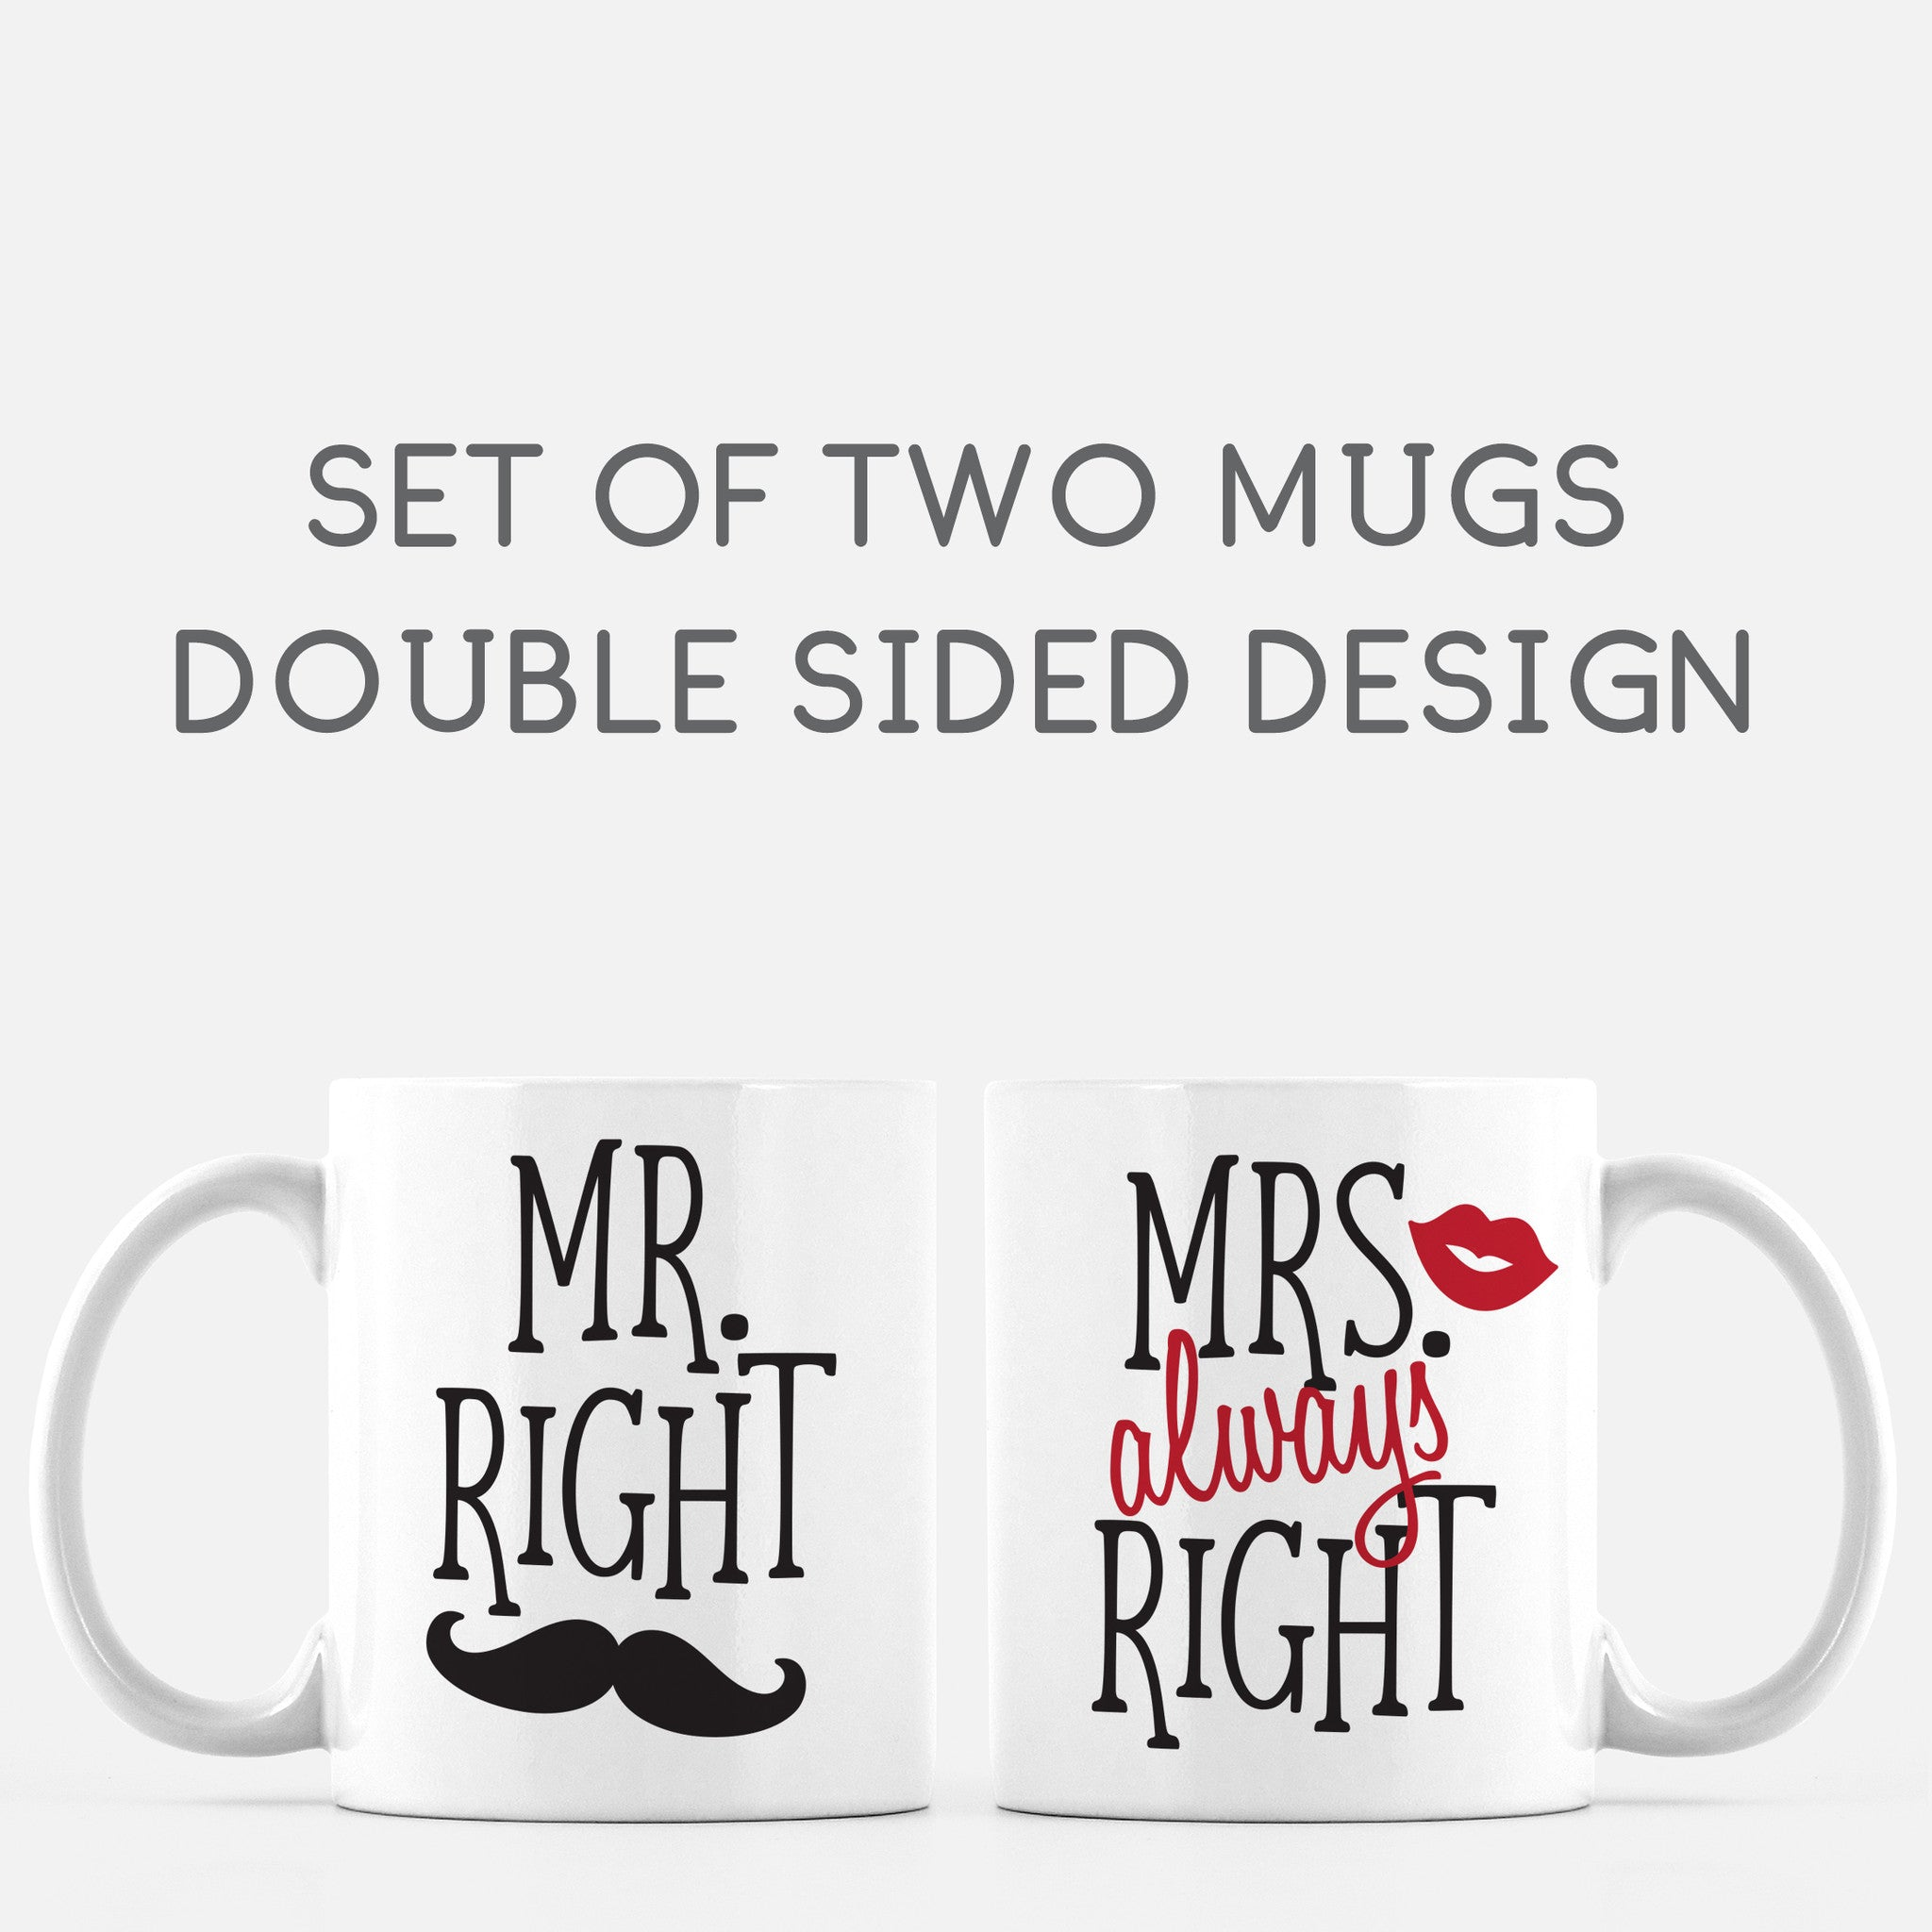 Mr Right and Mrs Always Right Coffee Mug Set